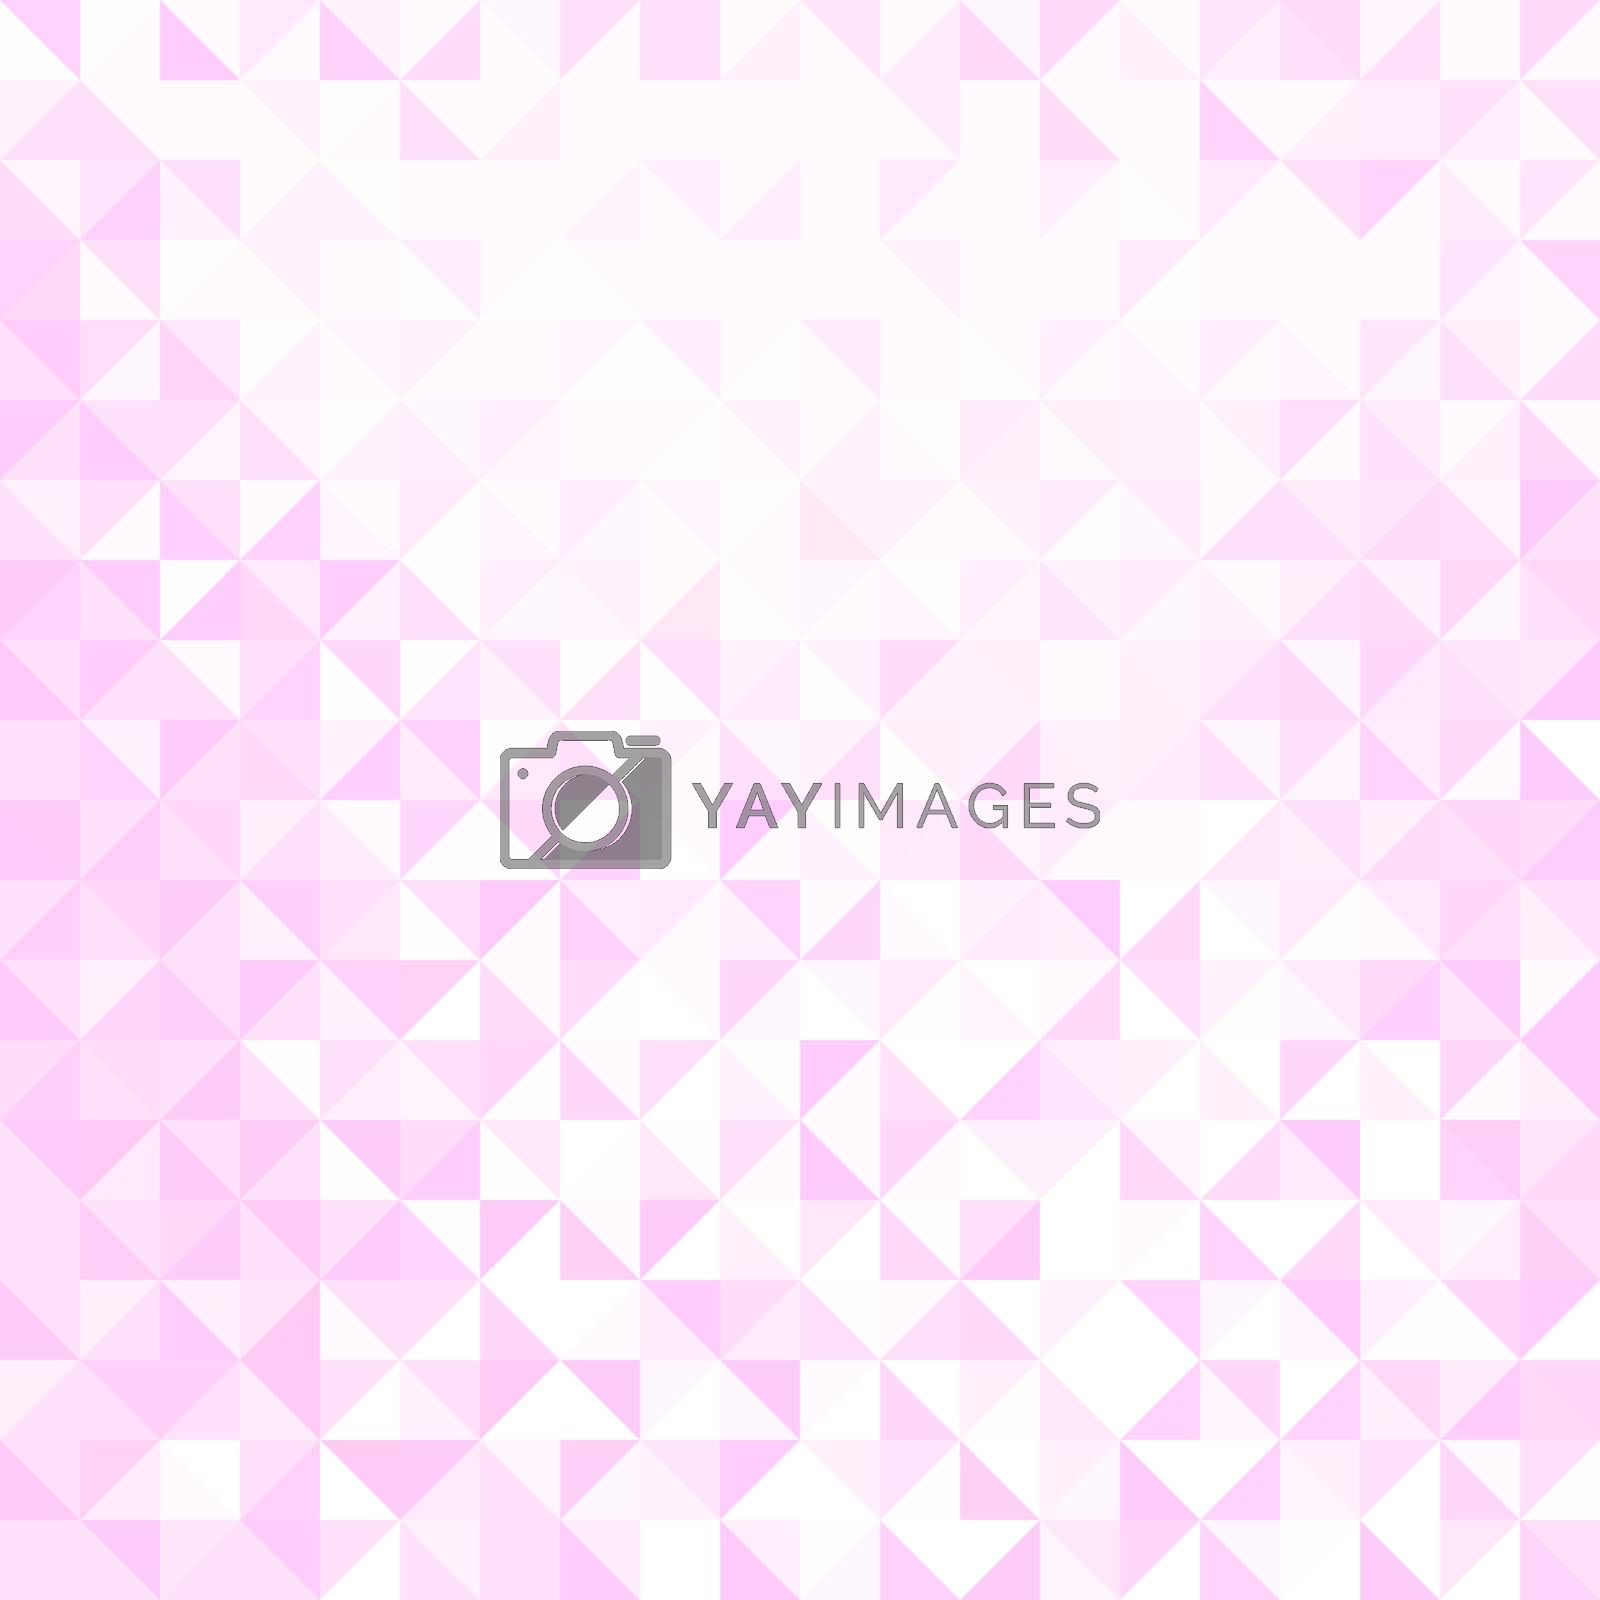 Light pink and white triangle shapes pattern. Abstract geometric background.